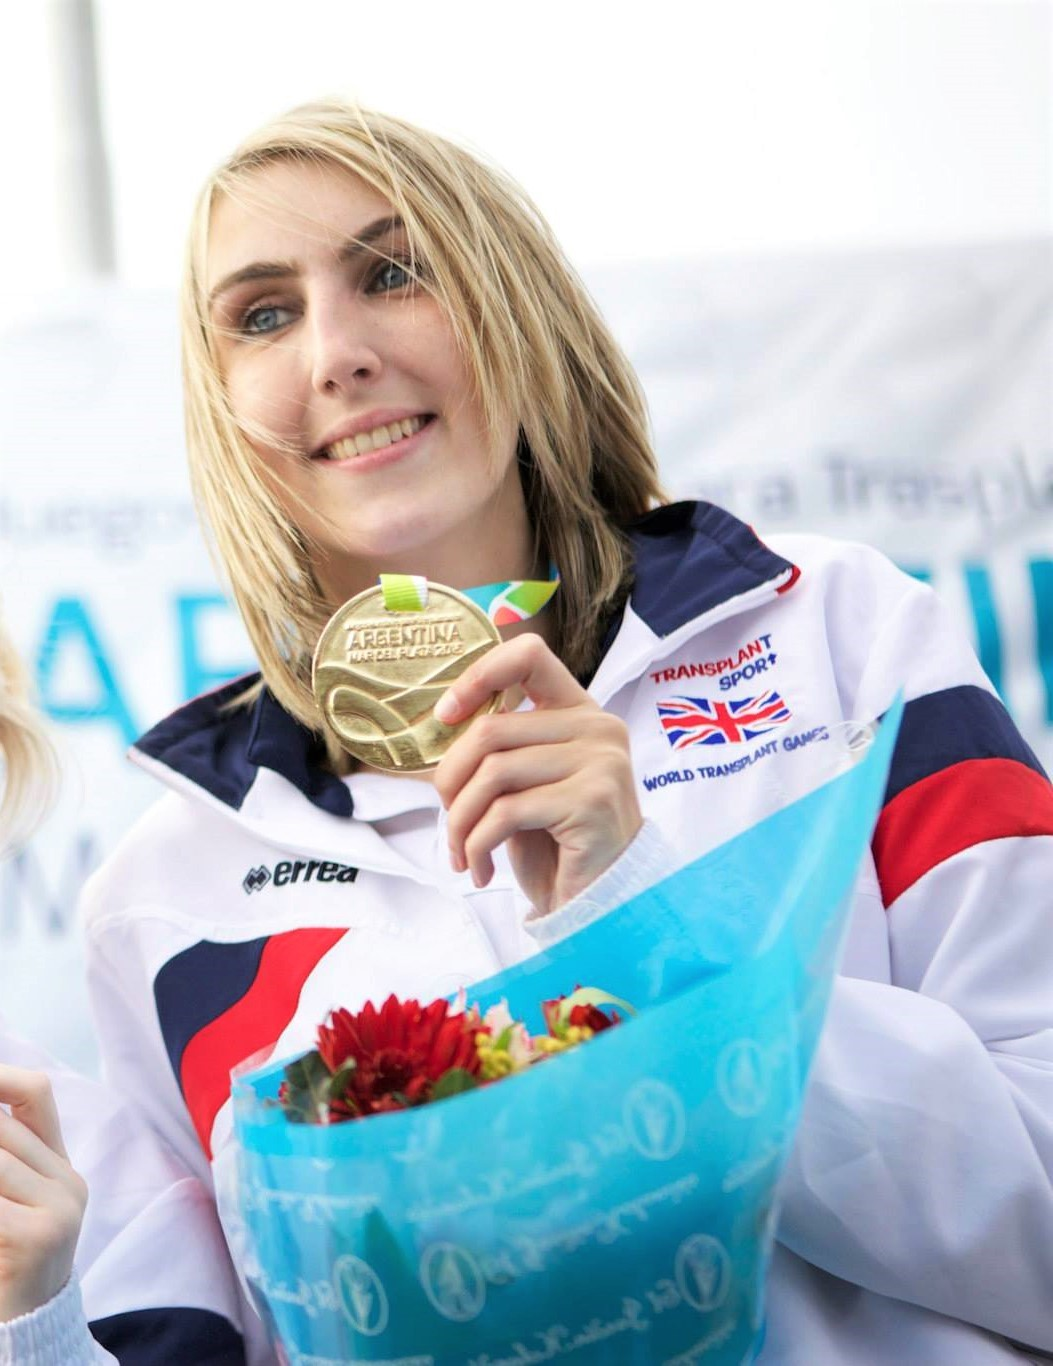 Emma Hilton, gold medallist at the 2015 World Transplant Games, has benefitted from the Sporting Champions scheme